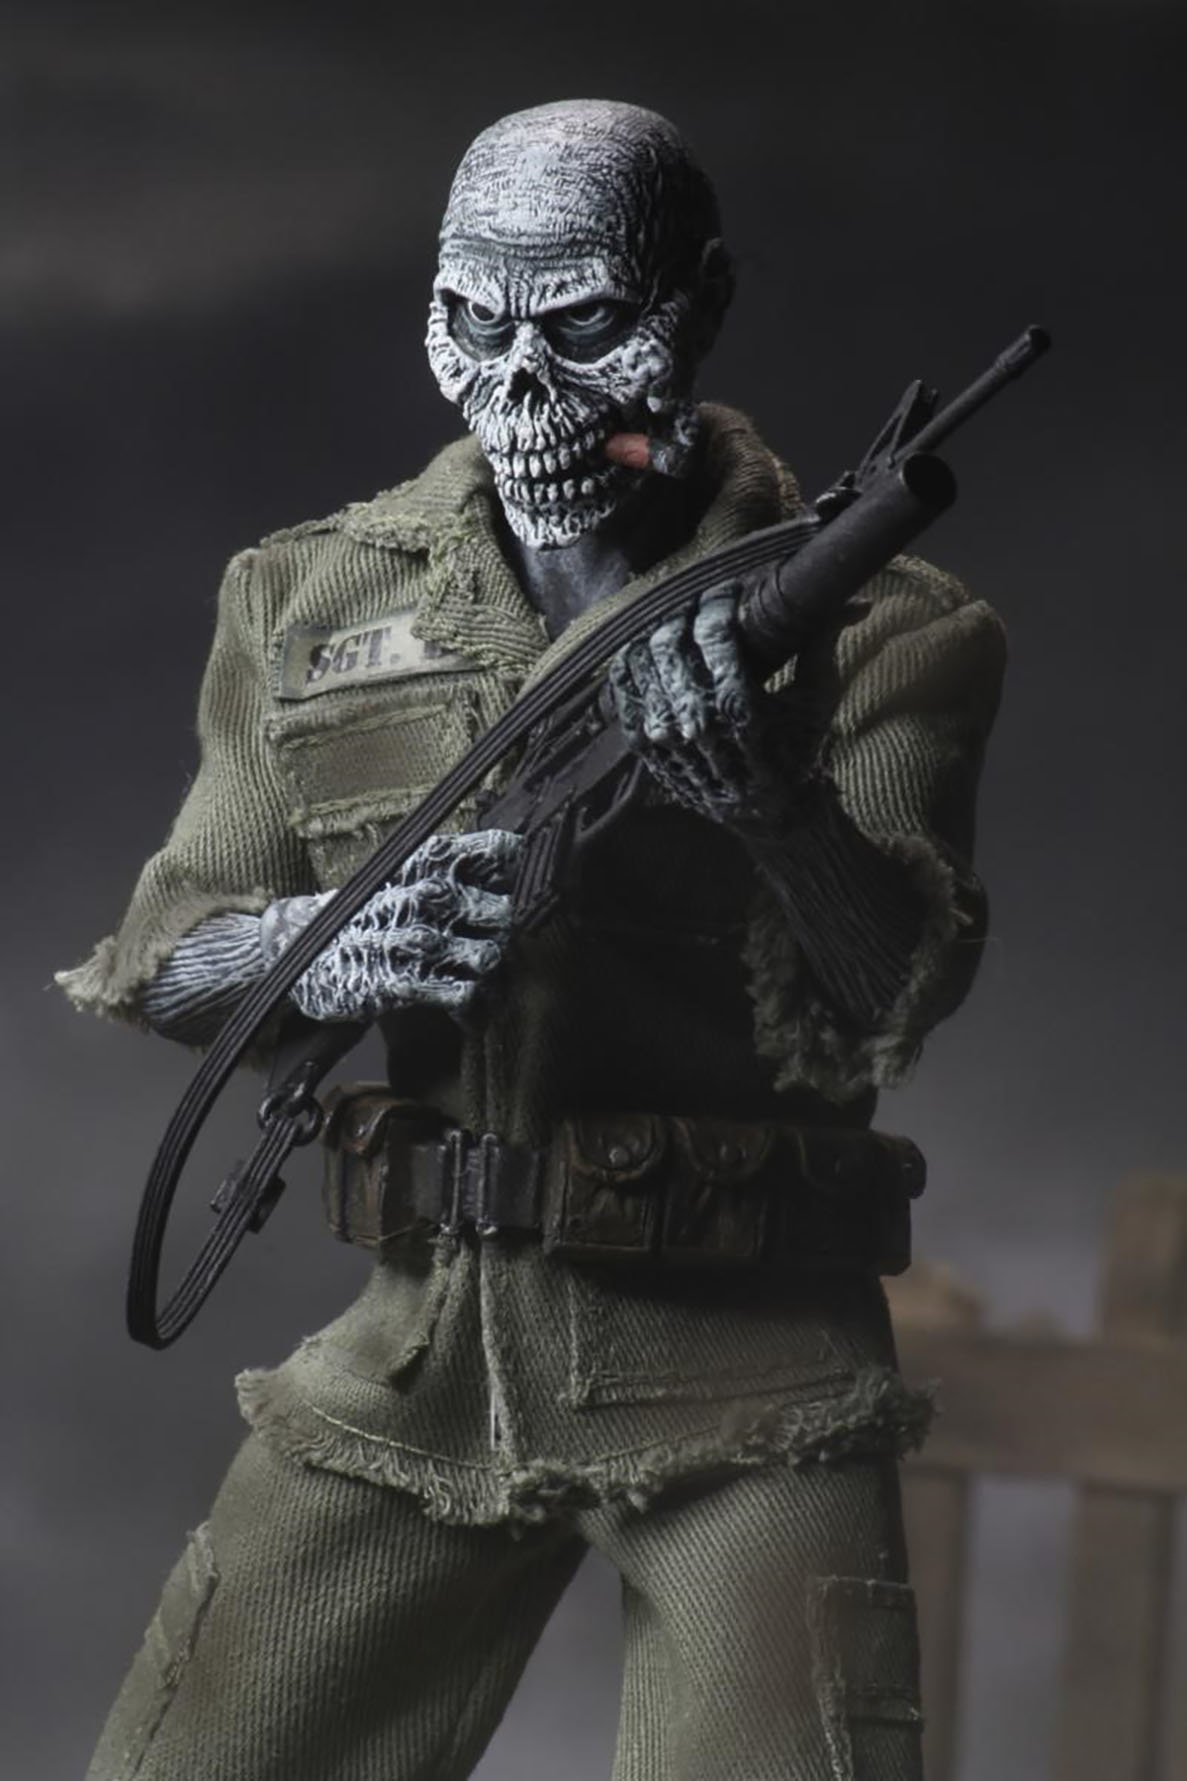 NECA Stormtroopers of Death: Sgt. D 8 inch Clothed Action Figure